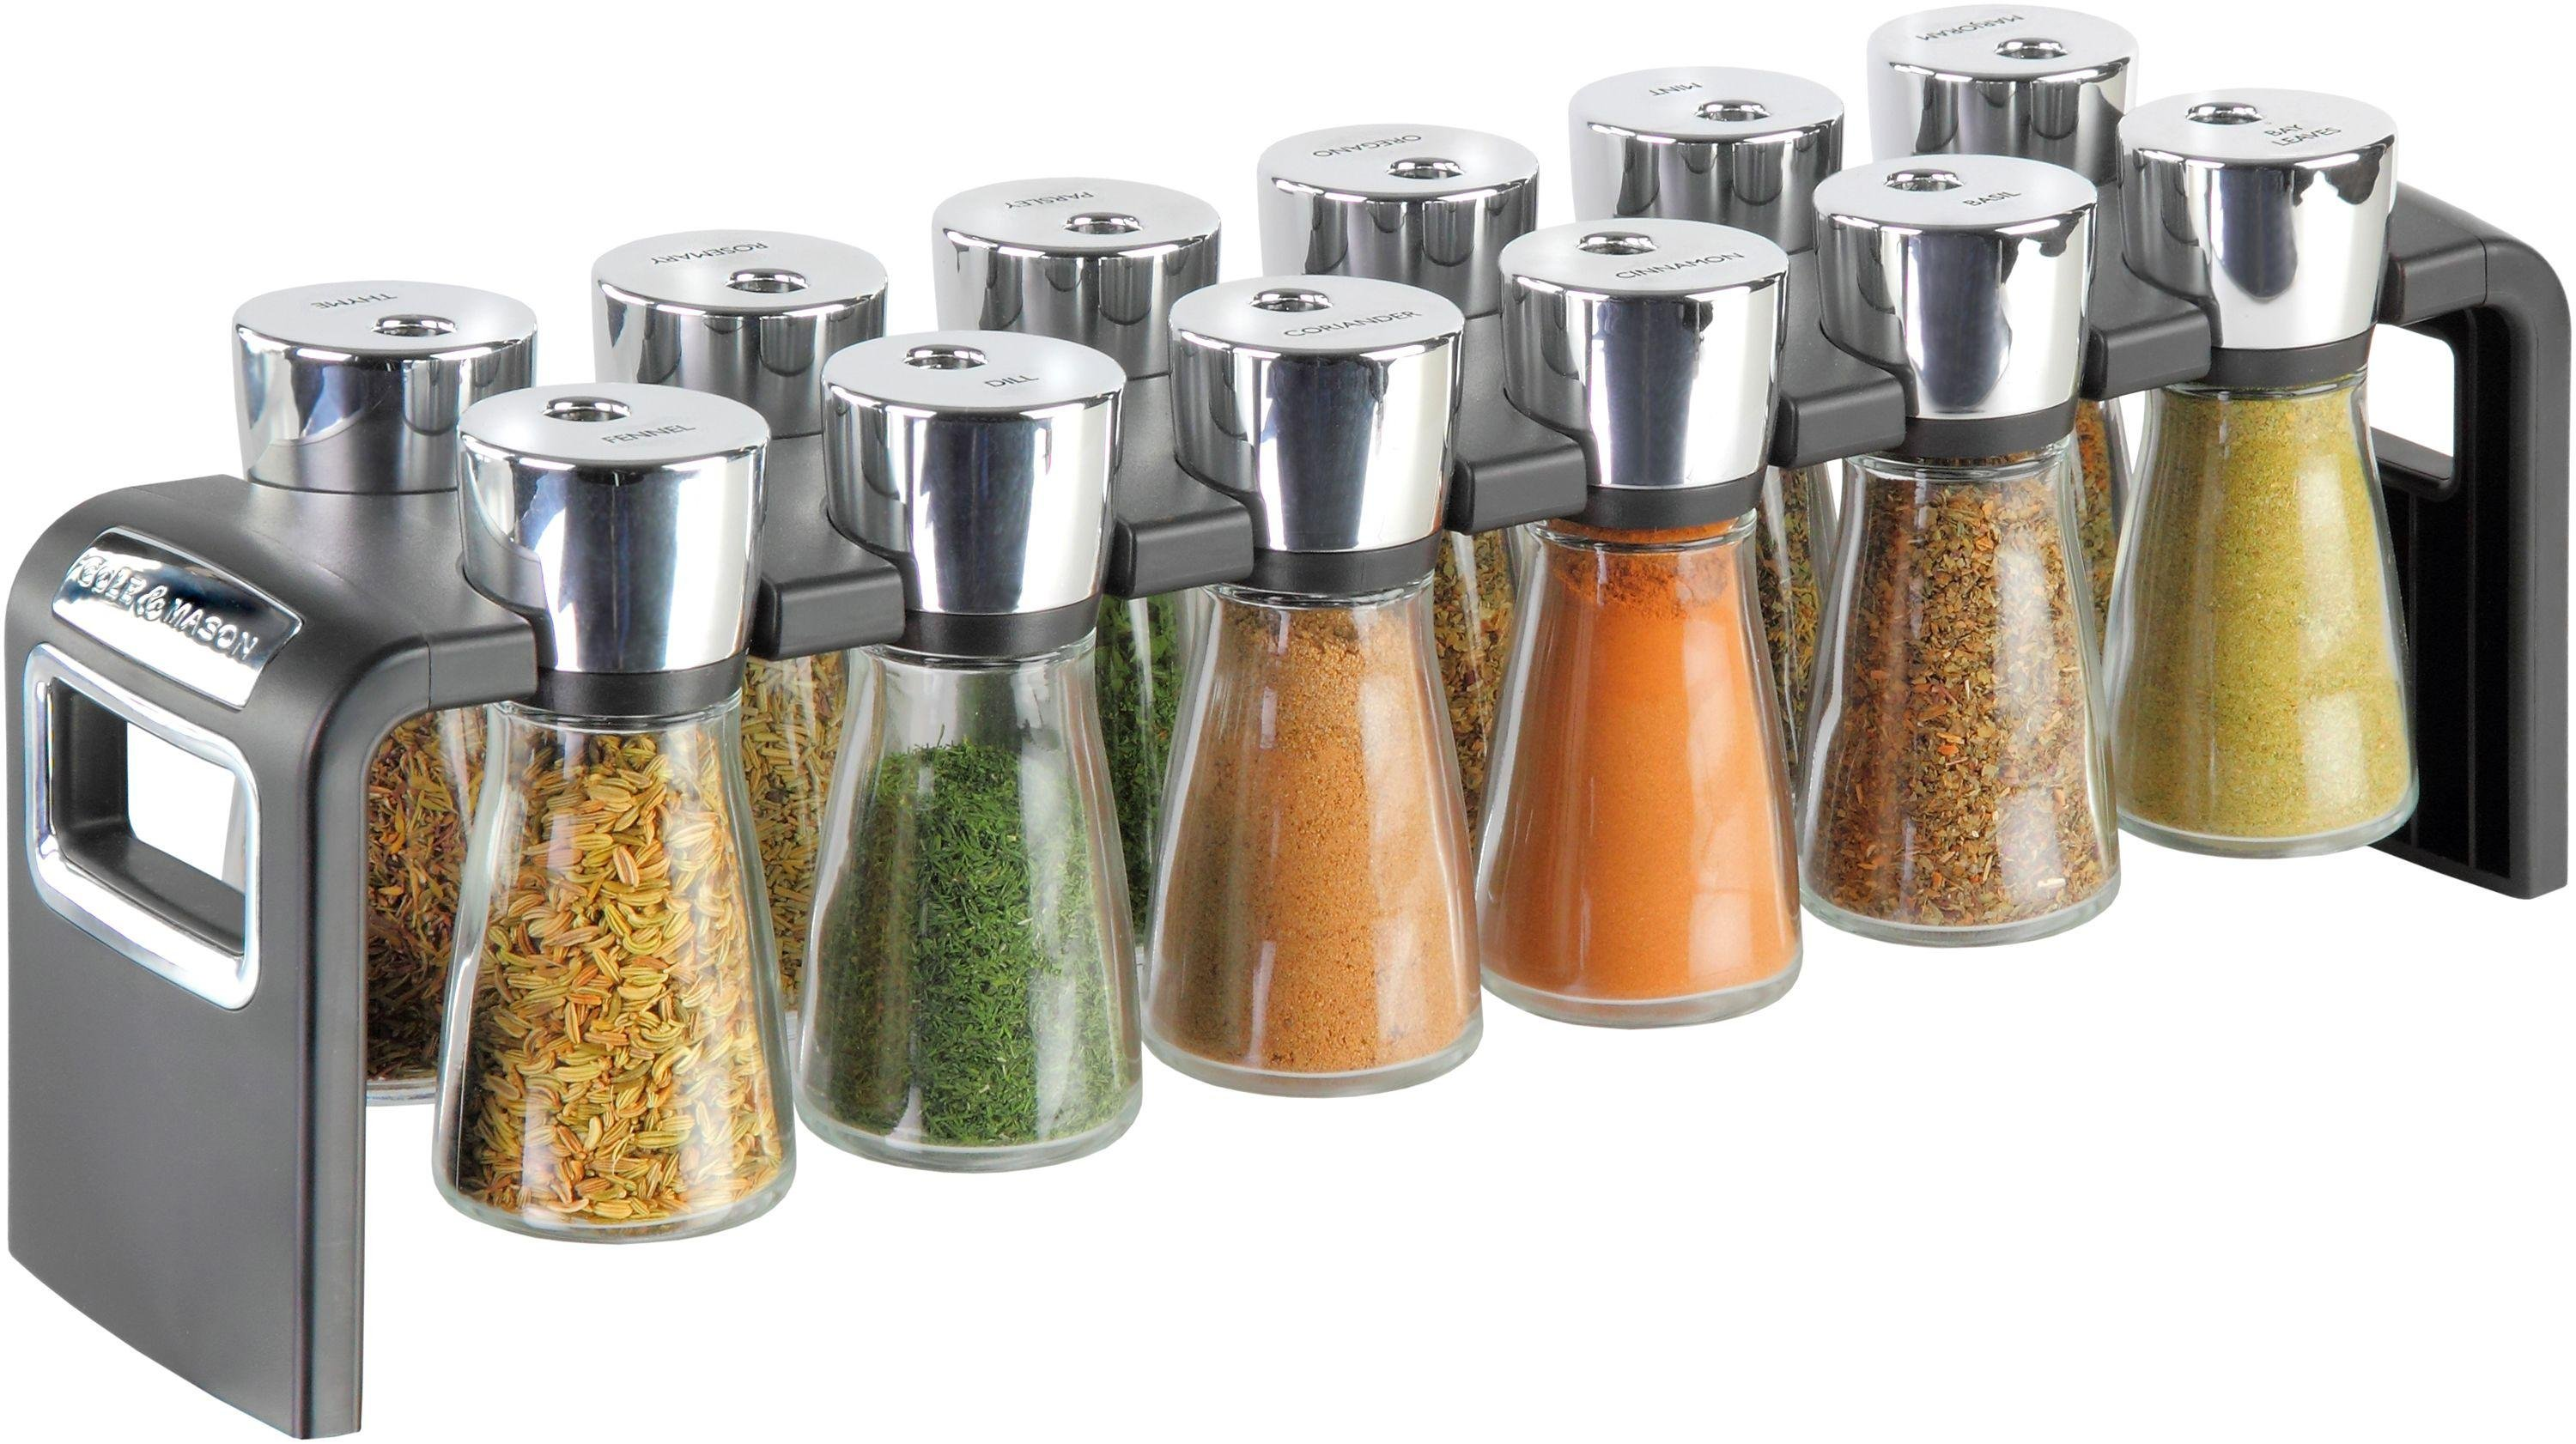 Image of Cole & Mason - 12 Jar Herb and Spice Rack